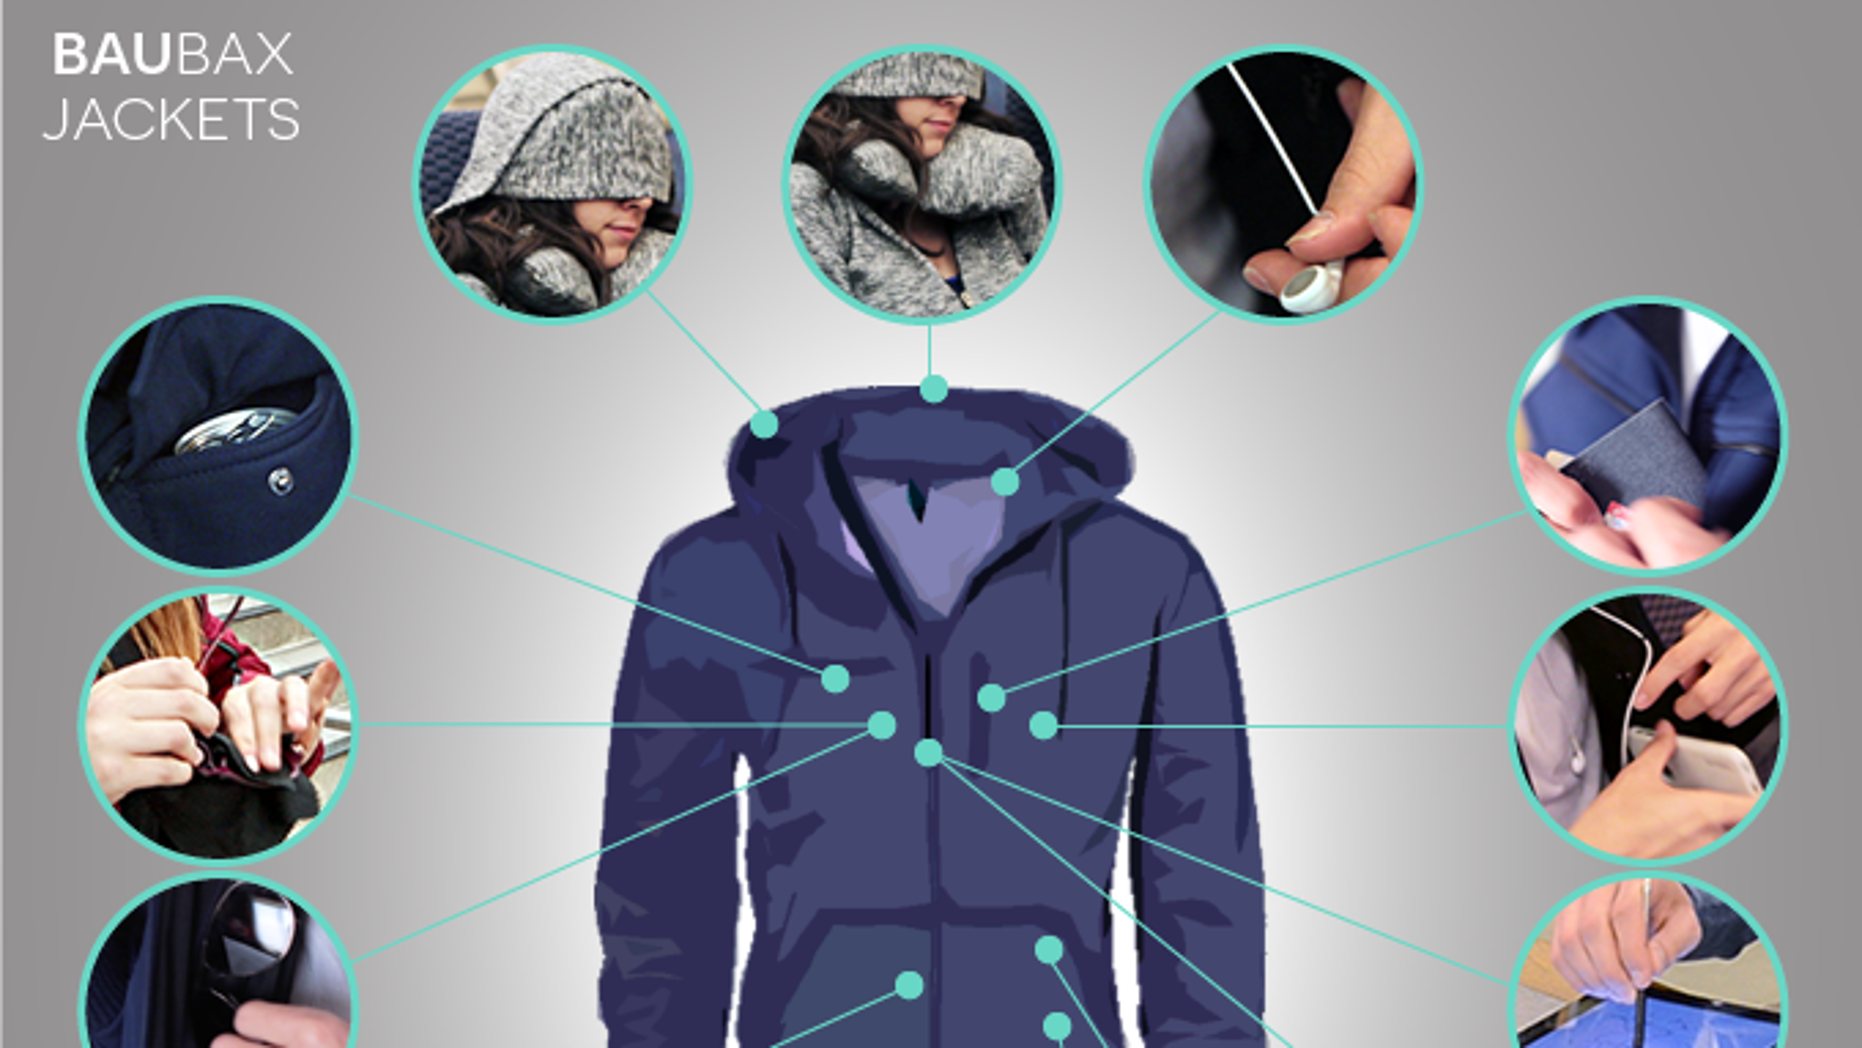 This multi-functional jacket has 15 coveted features for people on the go.